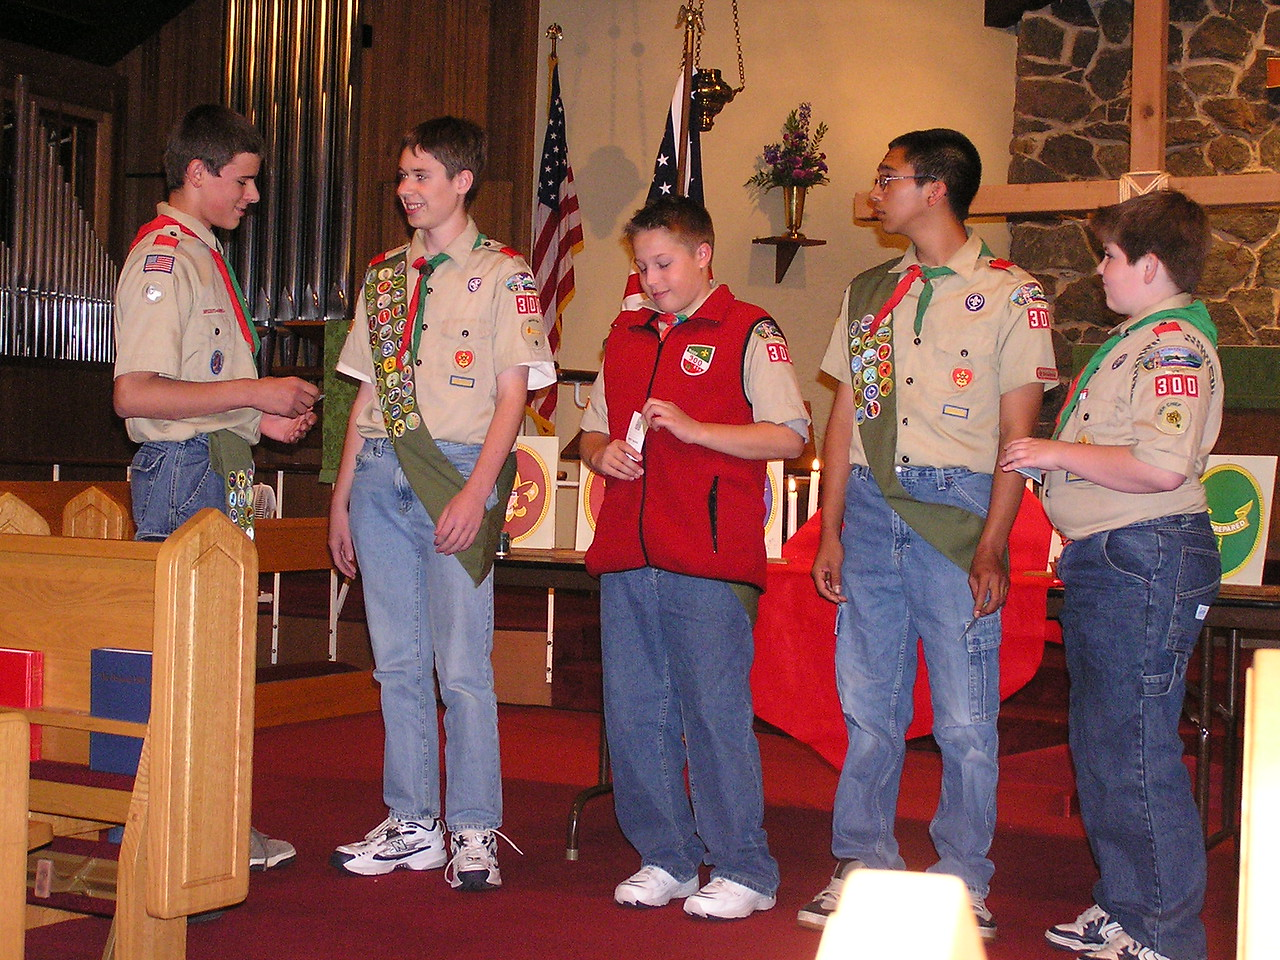 03-09-08 Kevin, Scouts 009